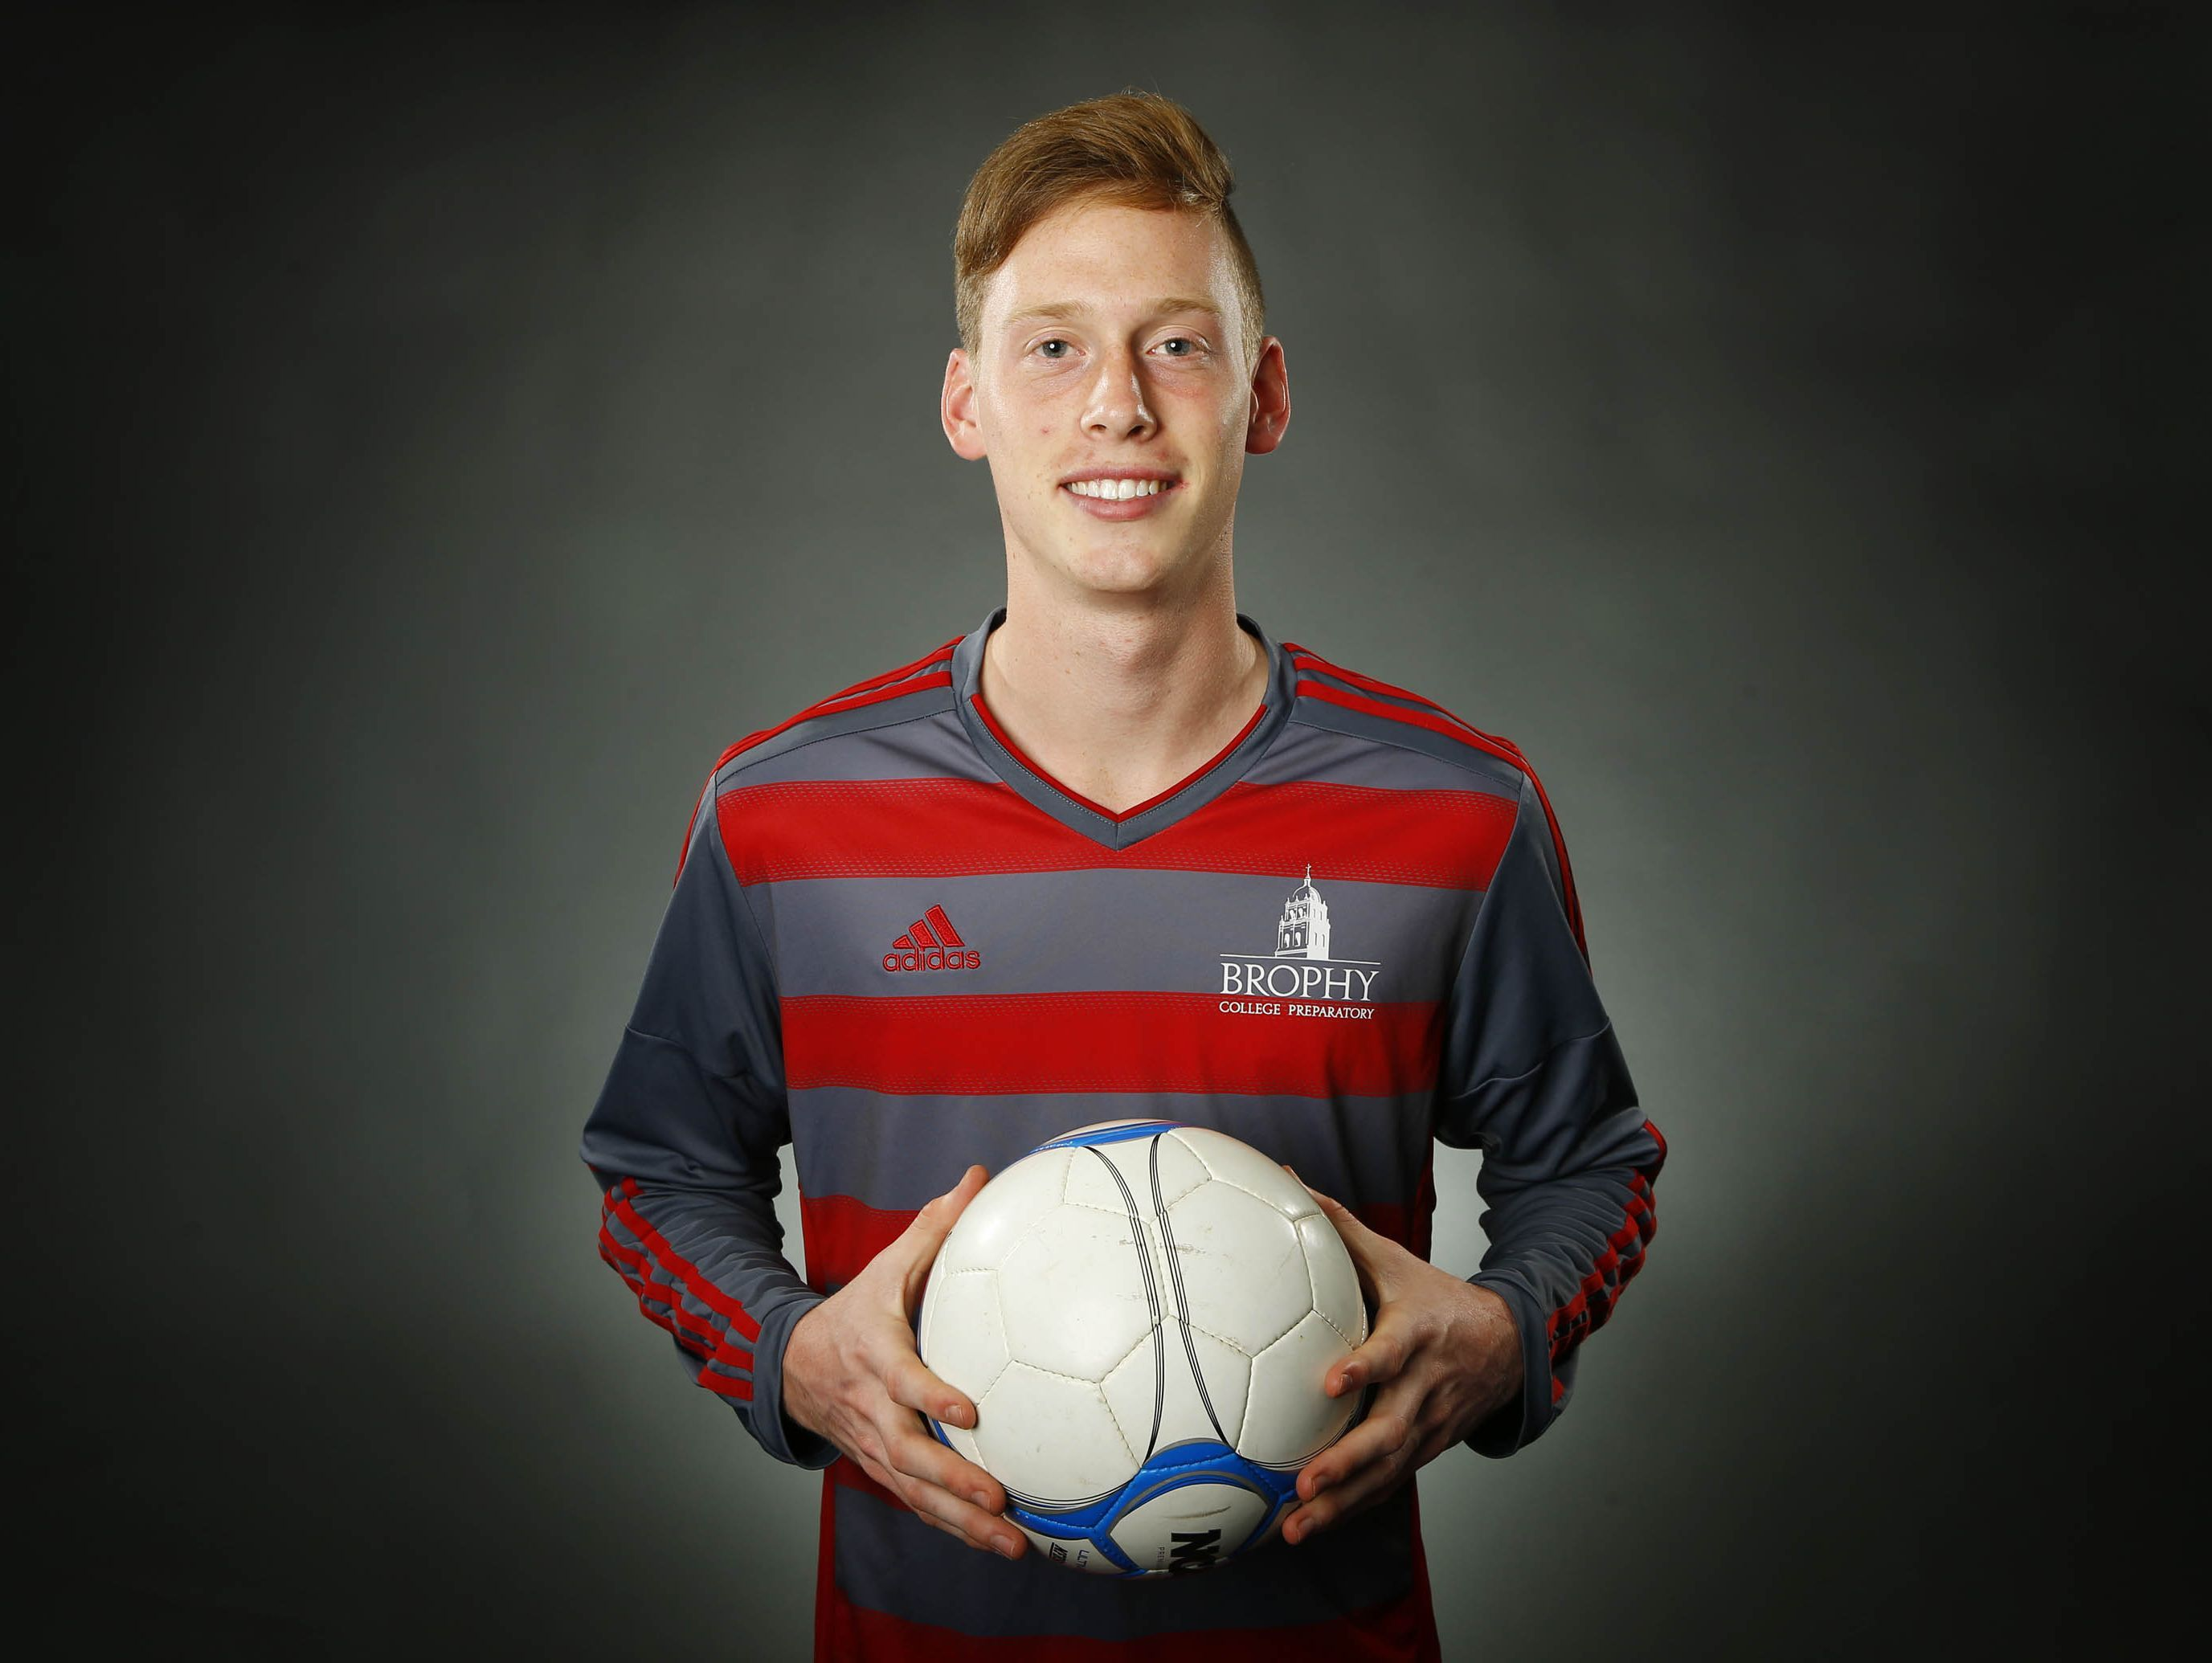 Phoenix Brophy Prep junior forward Carter Clemmensen is a finalist for the azcentral.com Sports Awards Big Schools Boys Soccer Athlete of the Year award.